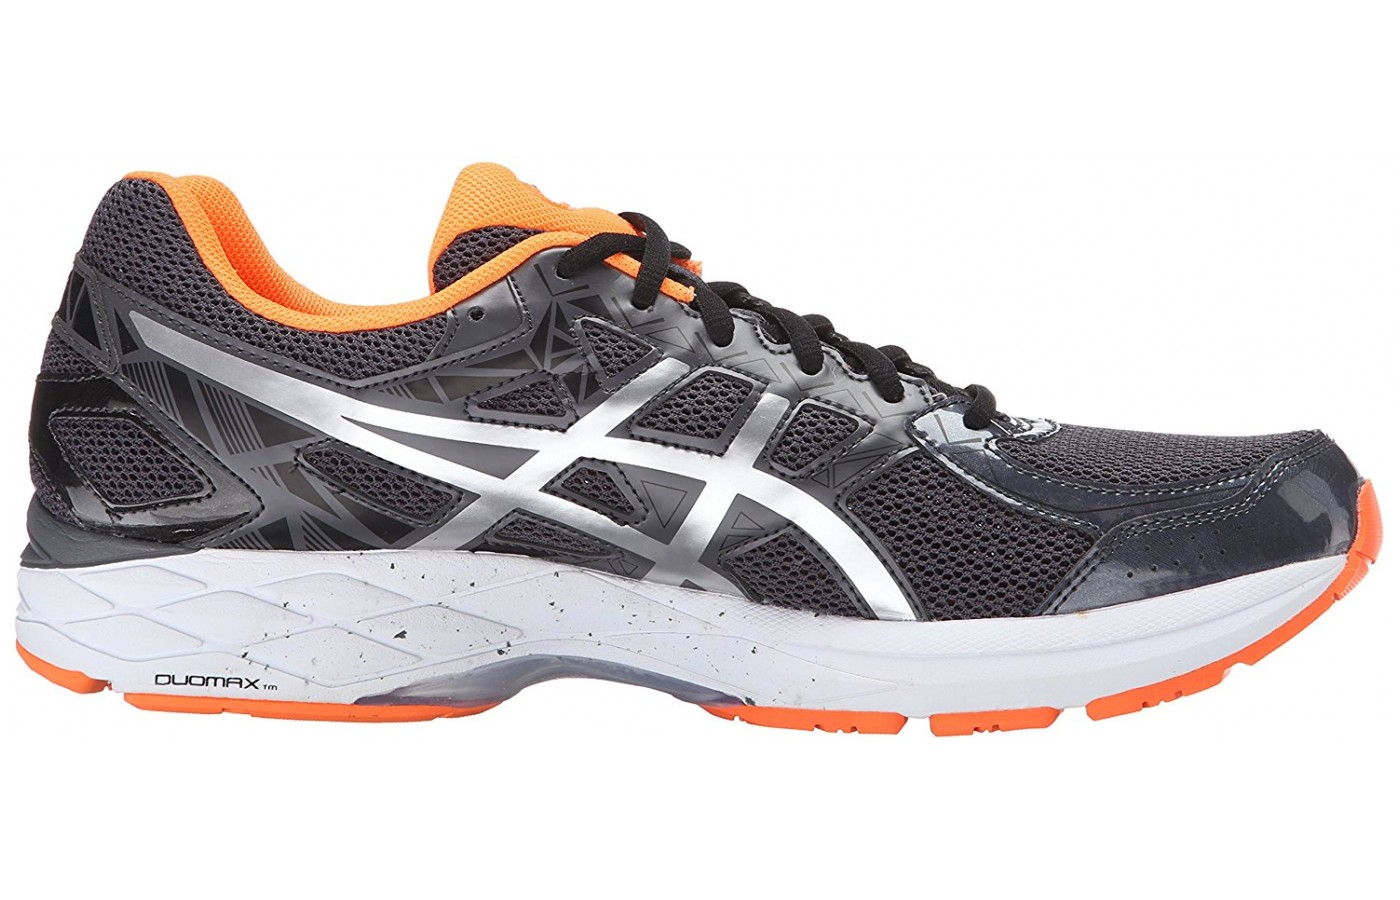 Asics Gel Exalt 3 side